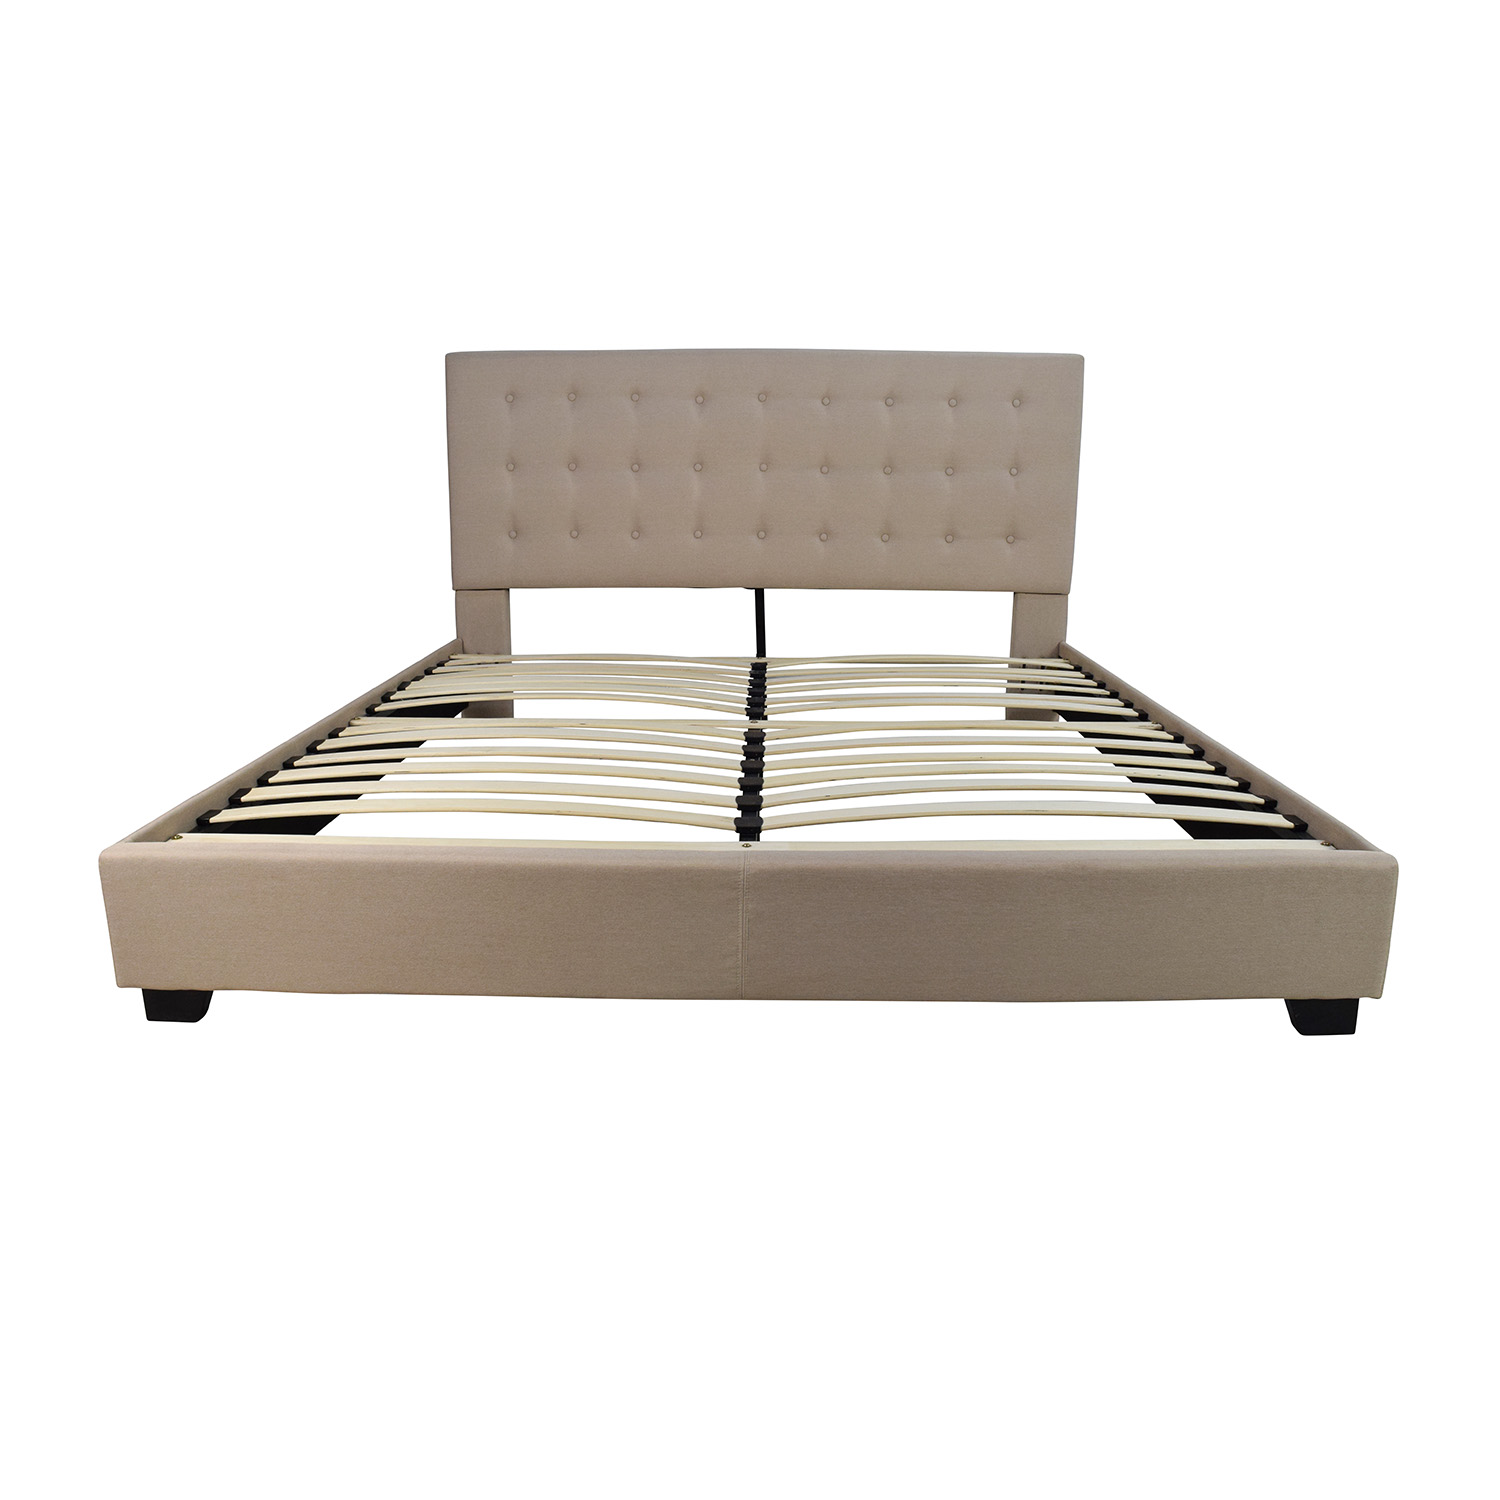 King Size Bed Frame 44 Off King Size Taupe Cloth Bed Frame Beds